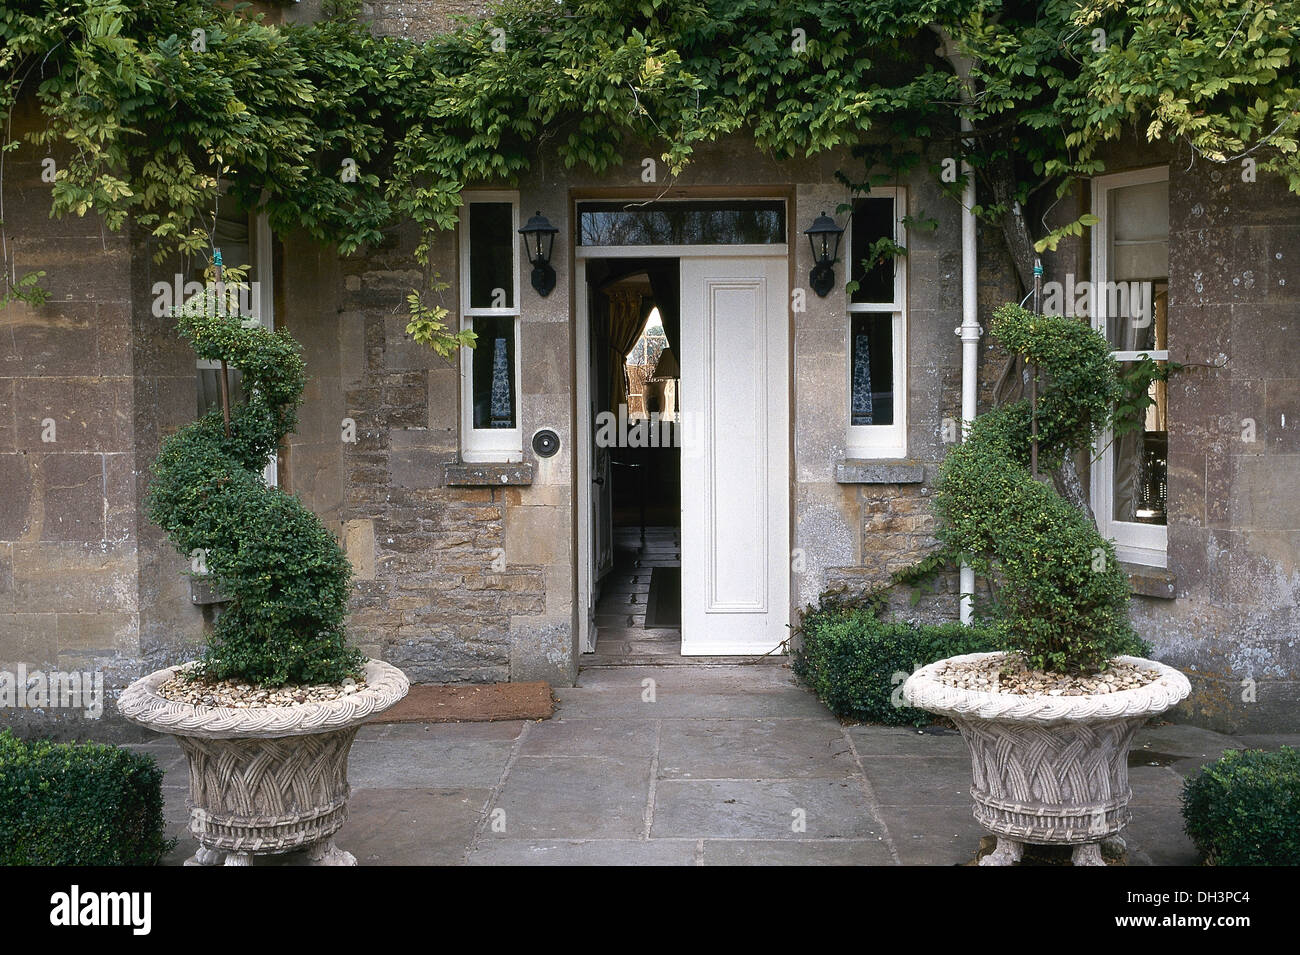 Spiral topiary box in stone urns in front of house with open front spiral topiary box in stone urns in front of house with open front door rubansaba